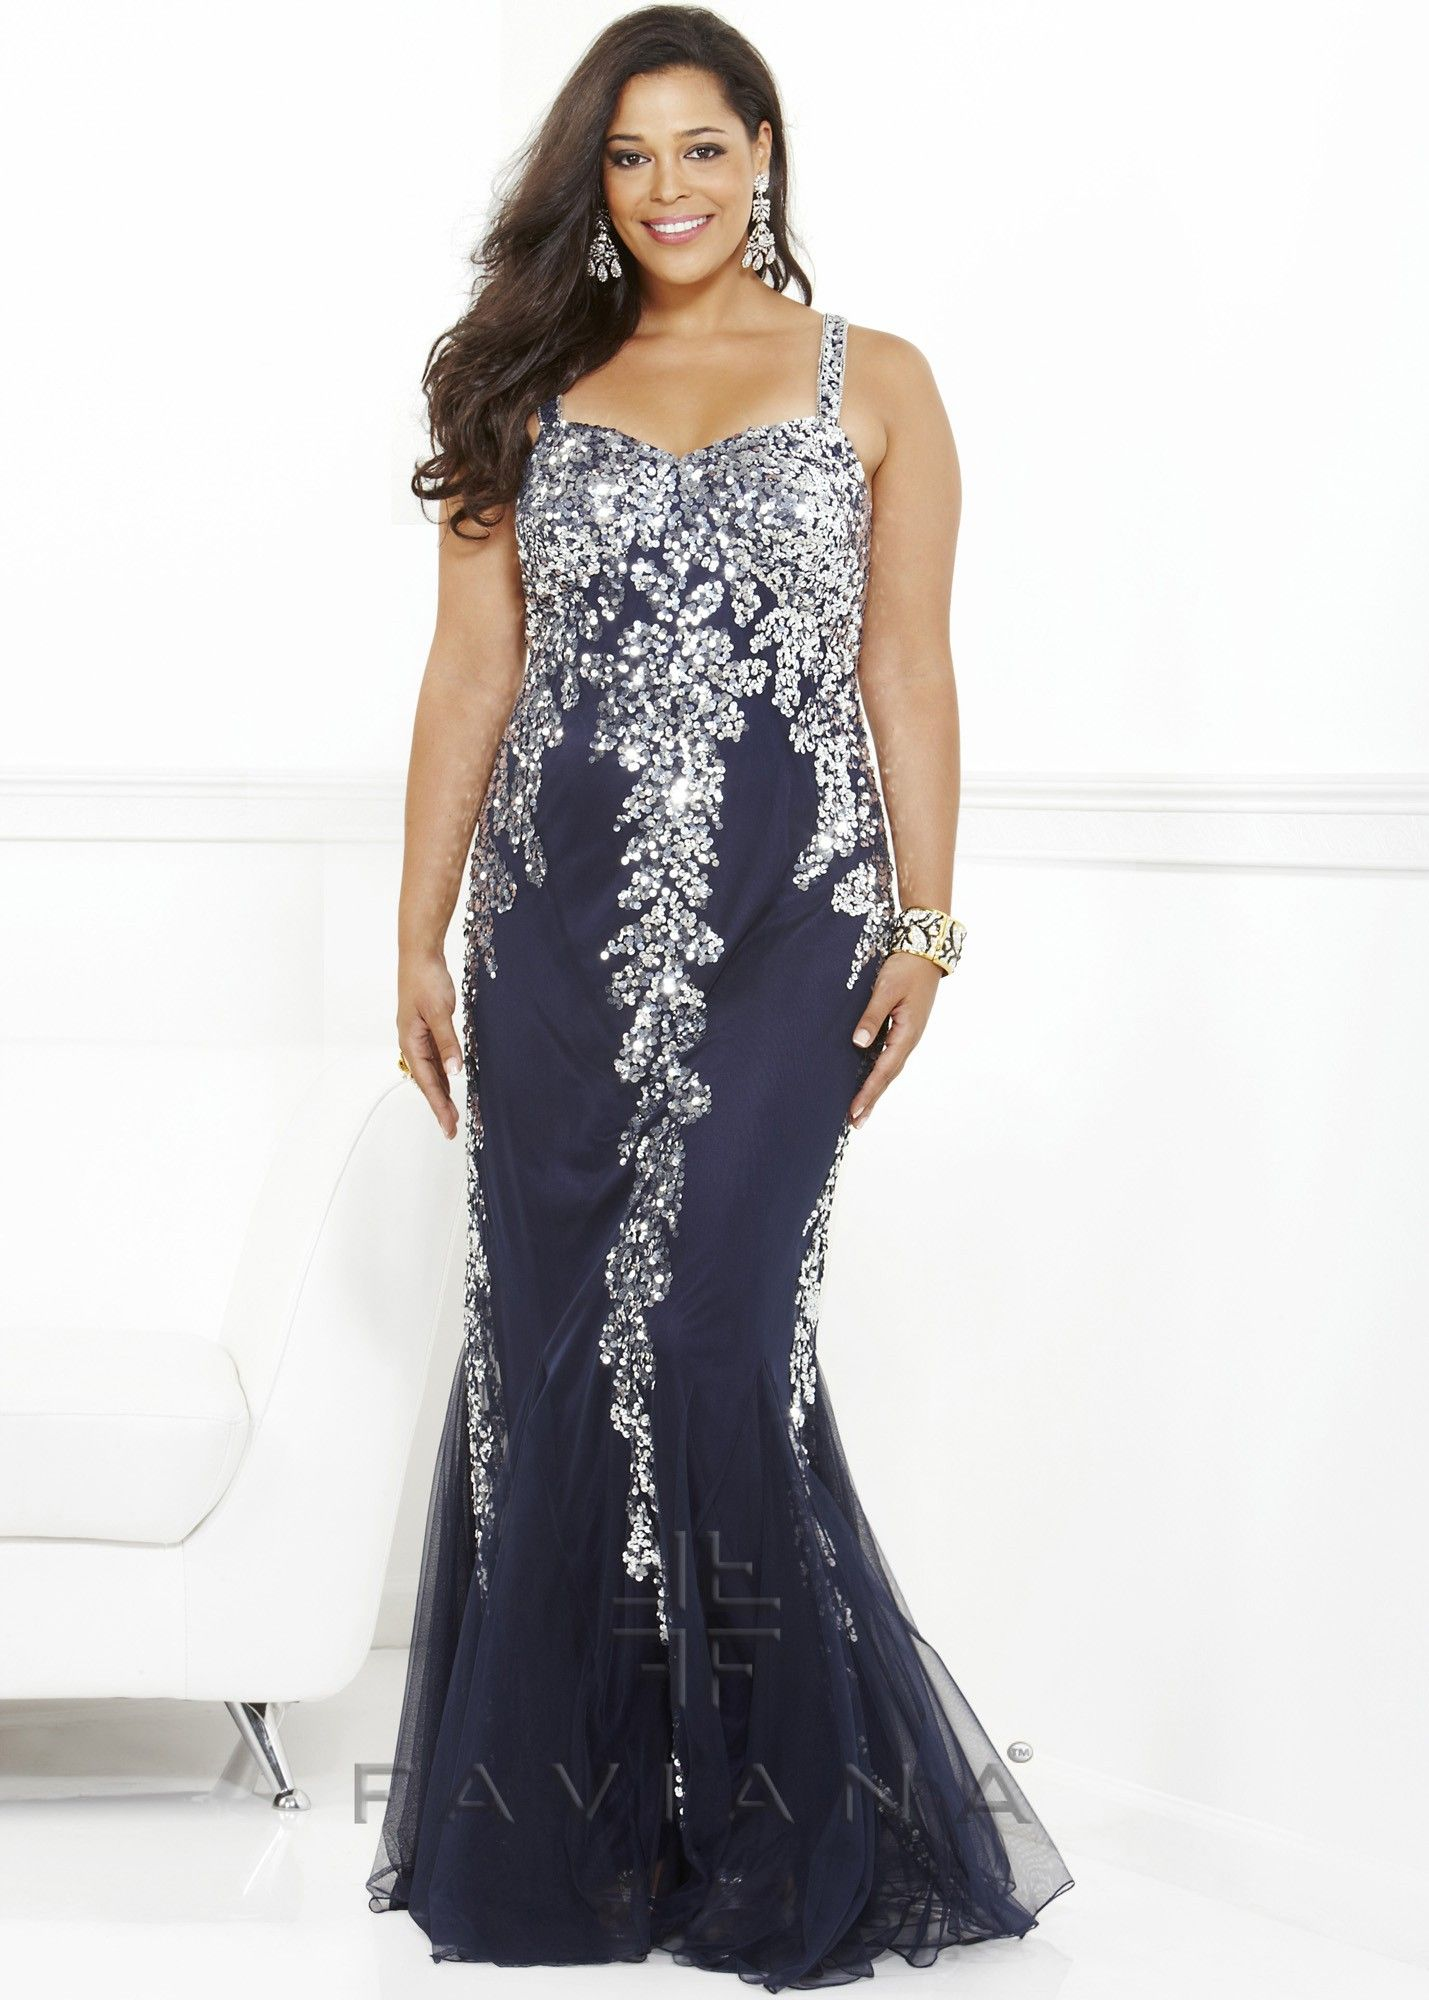 Elegant Plus Size Dress For Formal Events